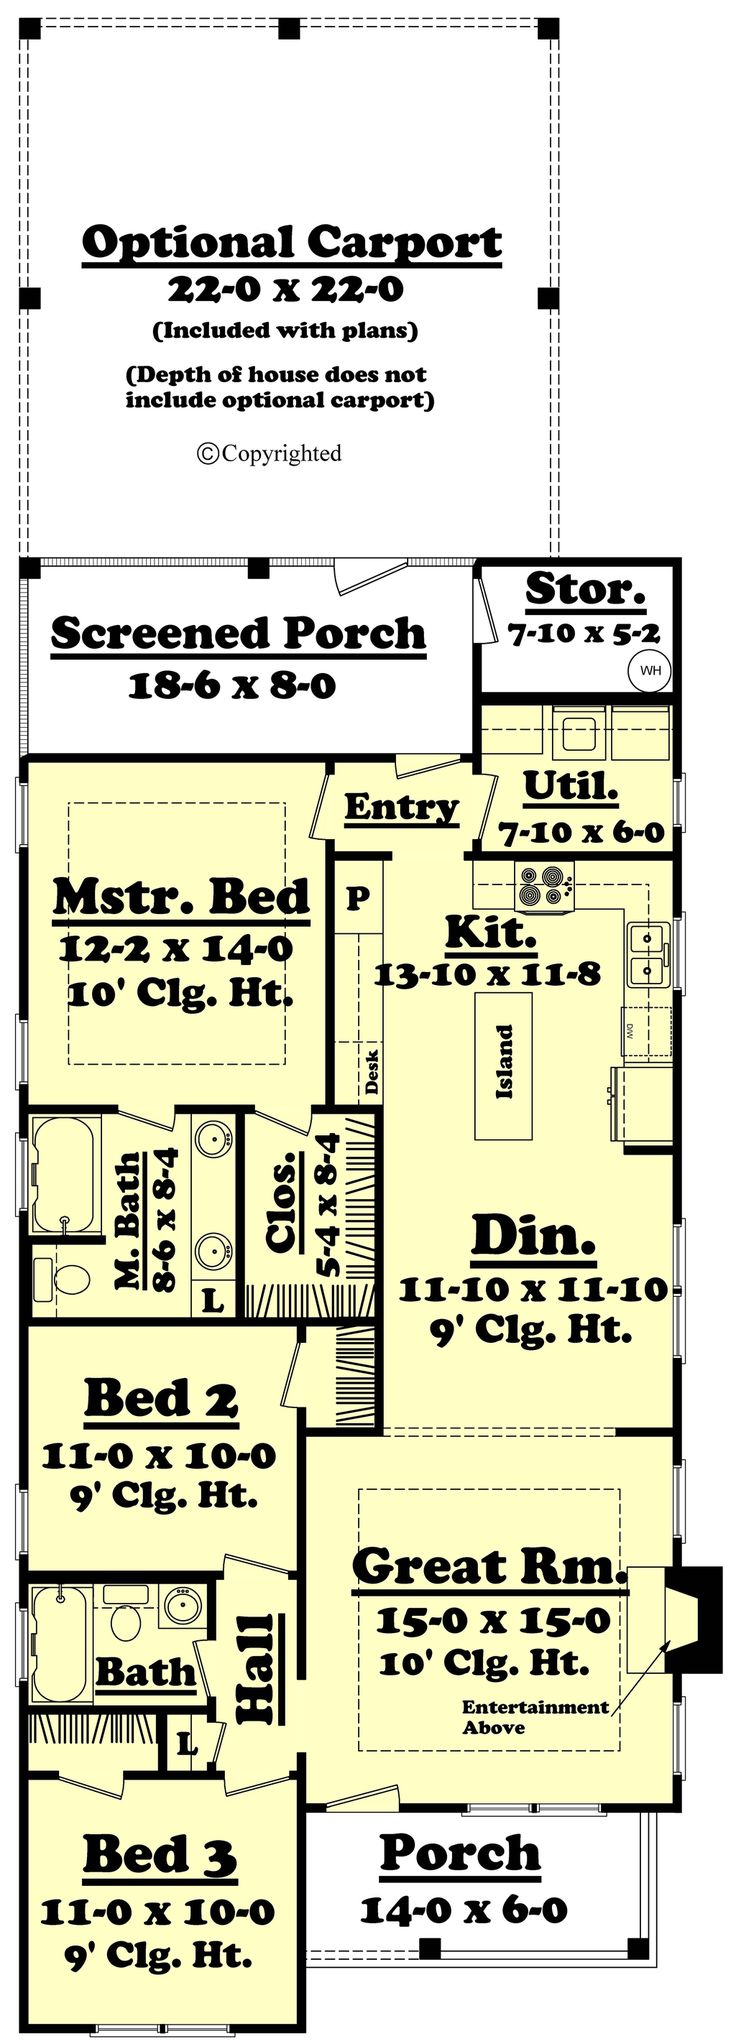 Displaying 11 gt images for cottage style showers - Small Cot E Style House Plan Baths Sq Ft Plan